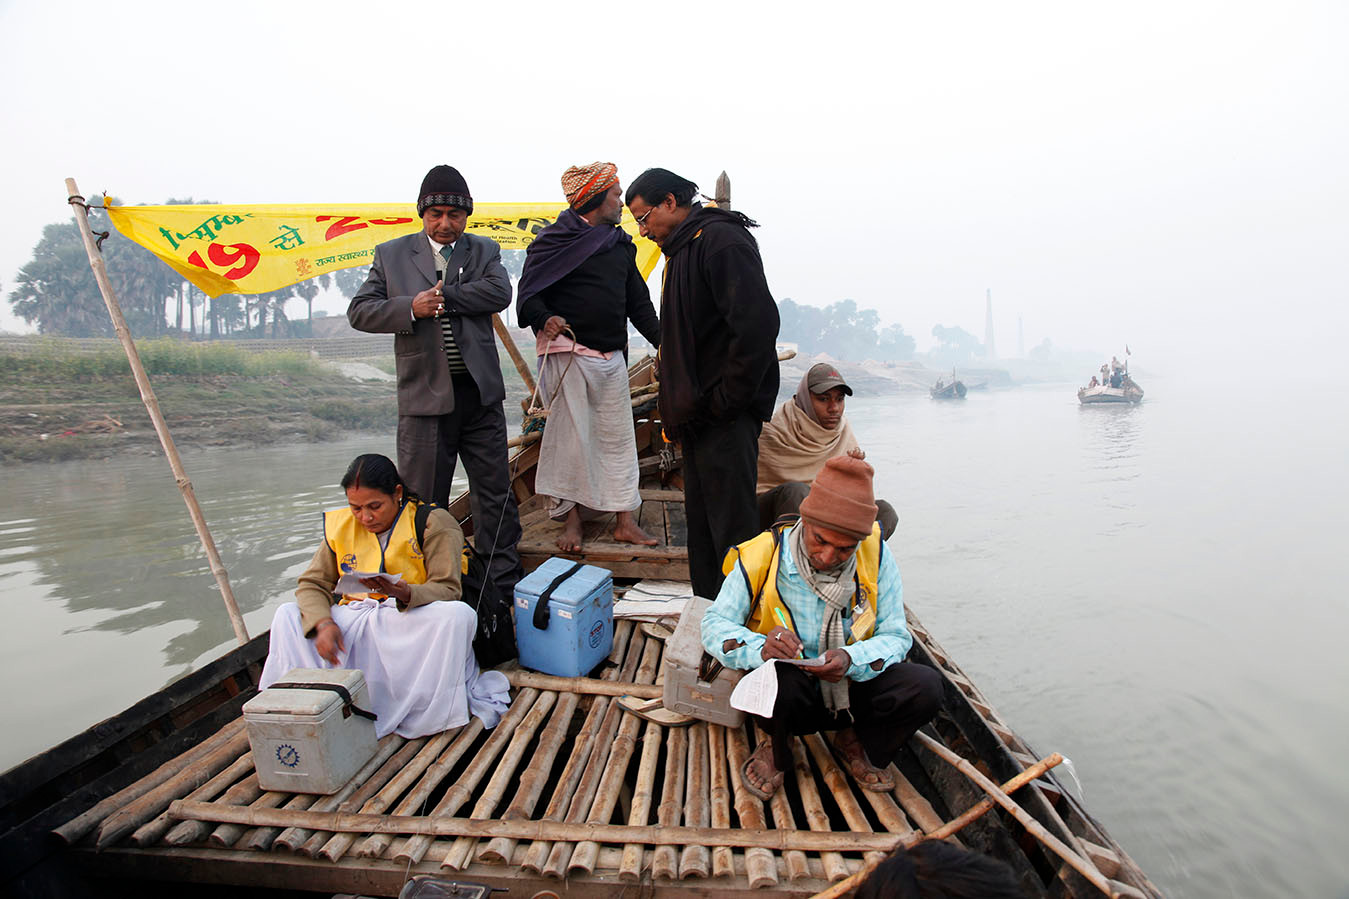 Polio vaccination team members travel in a boat to cross the Ganges river to their area of work in Kala Diara, Bihar, India, 2010.